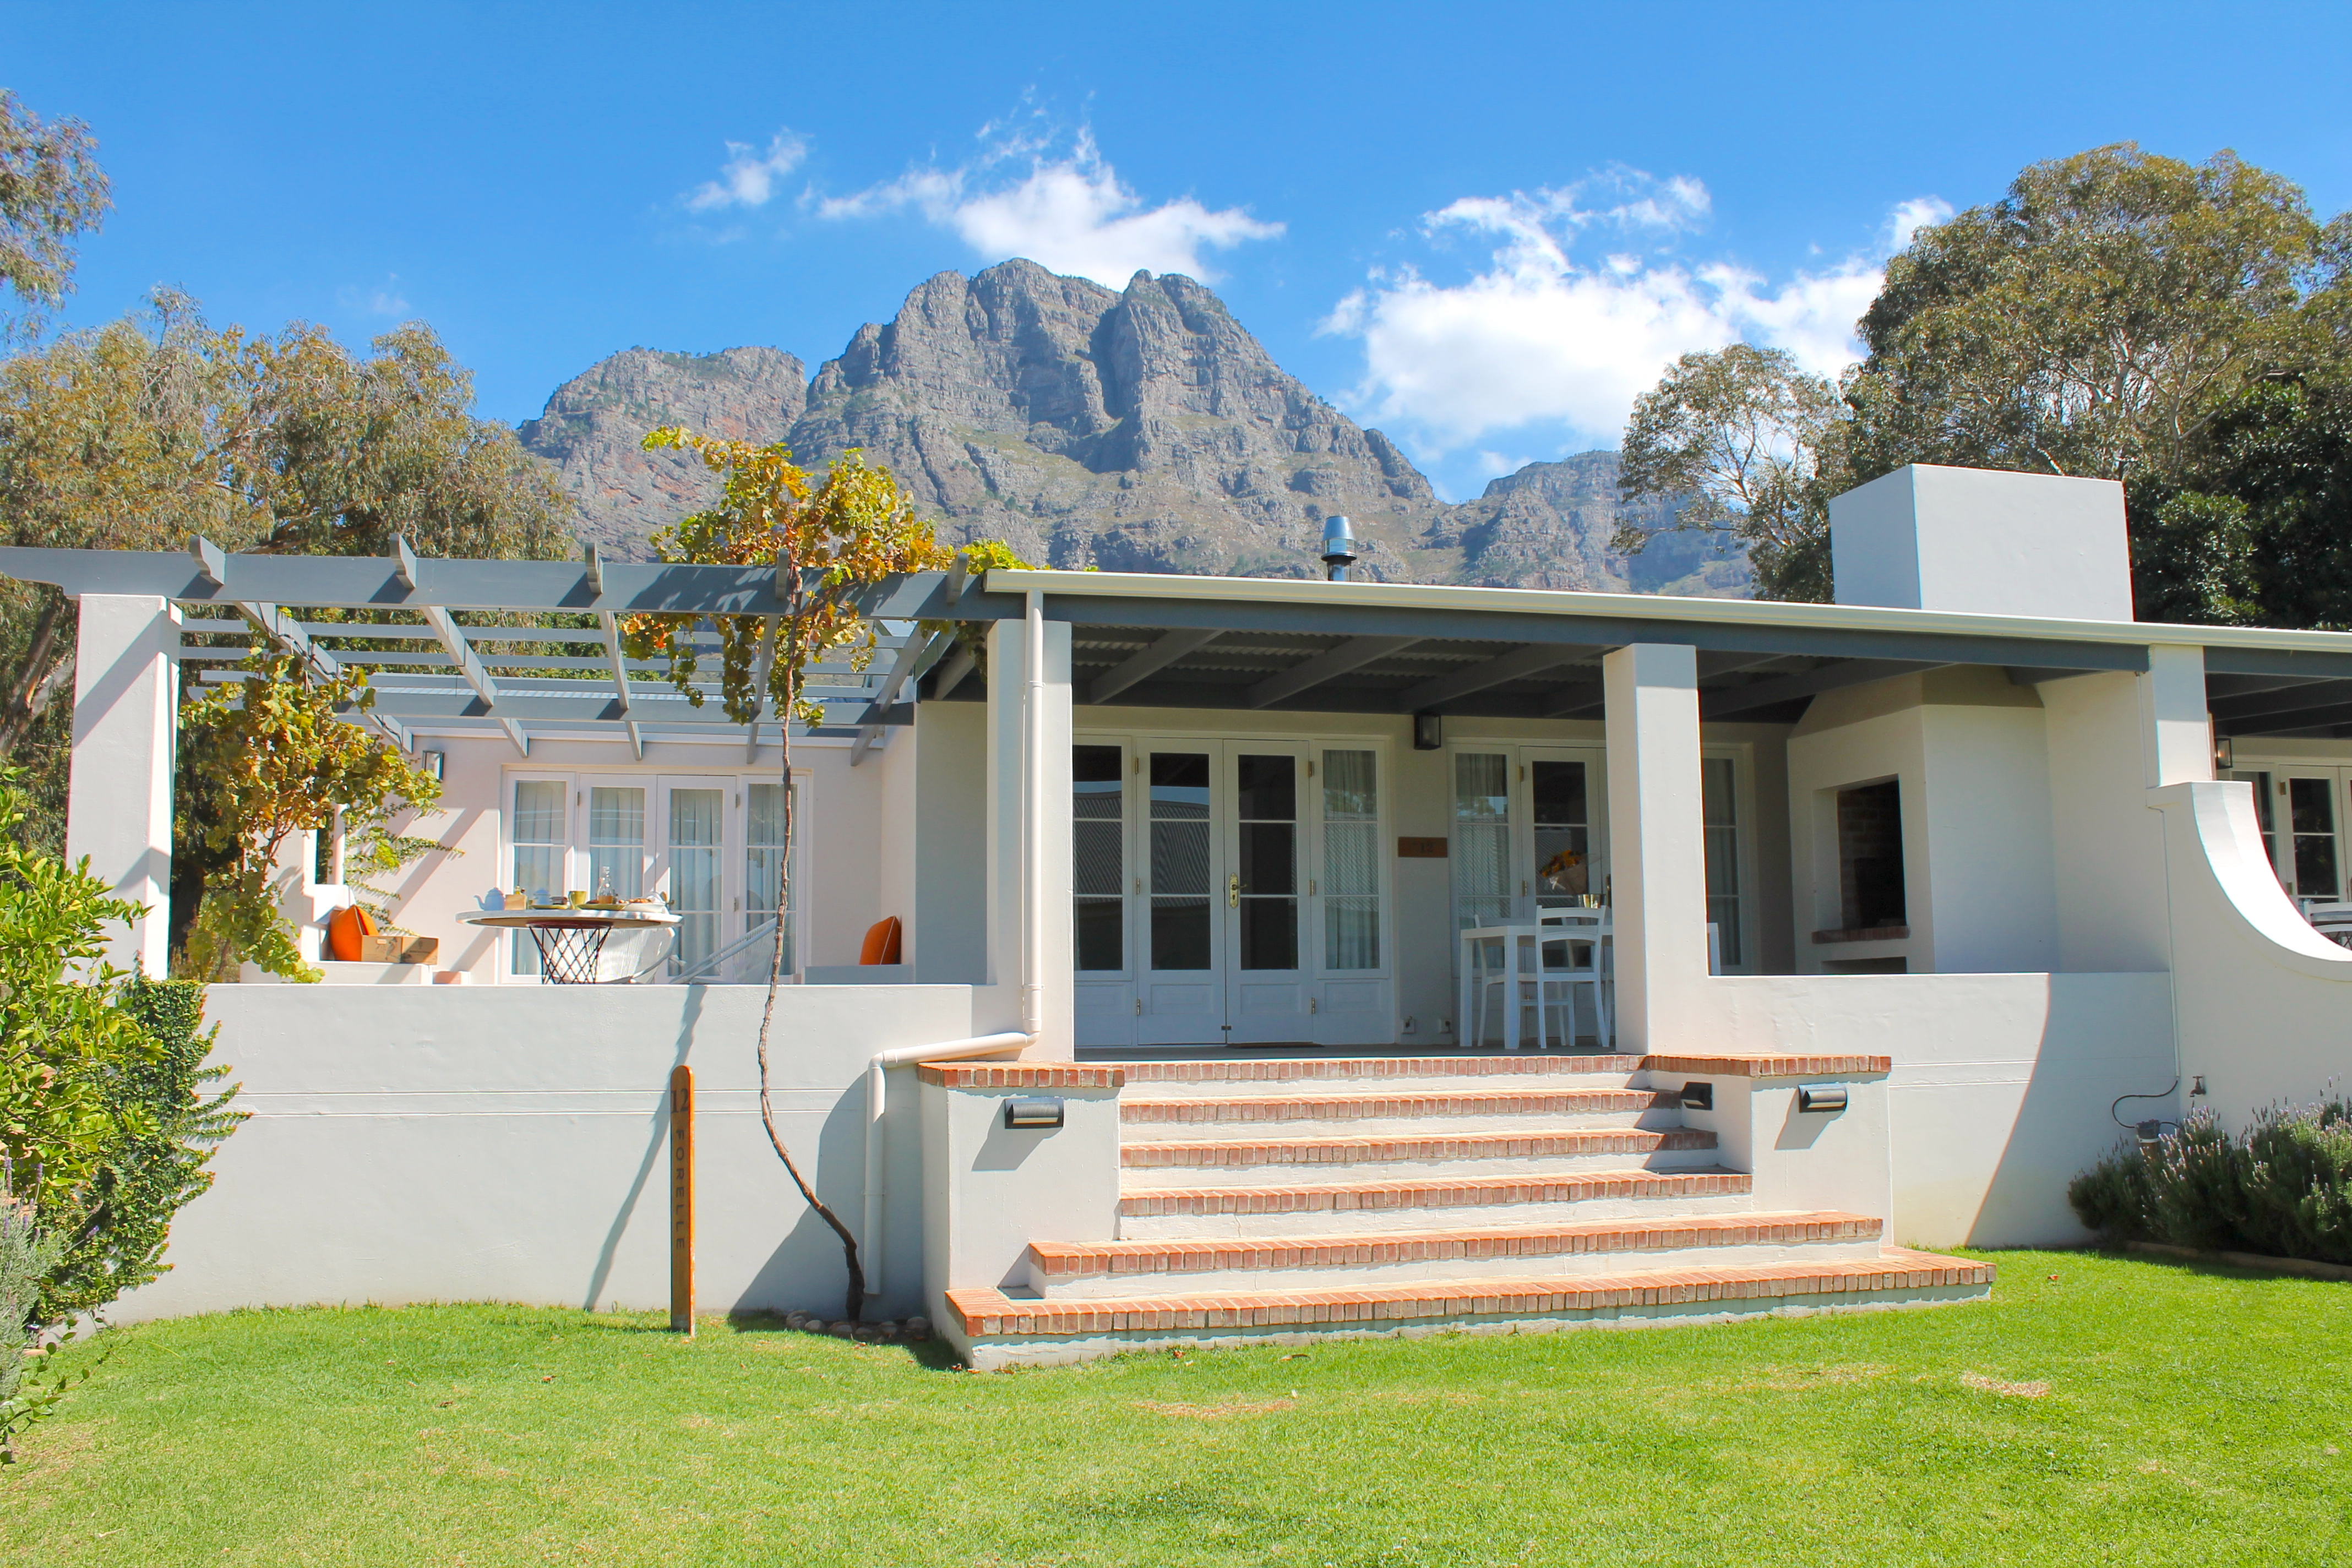 orchard-cottage-boschendal-southafrica-lustforthesublime